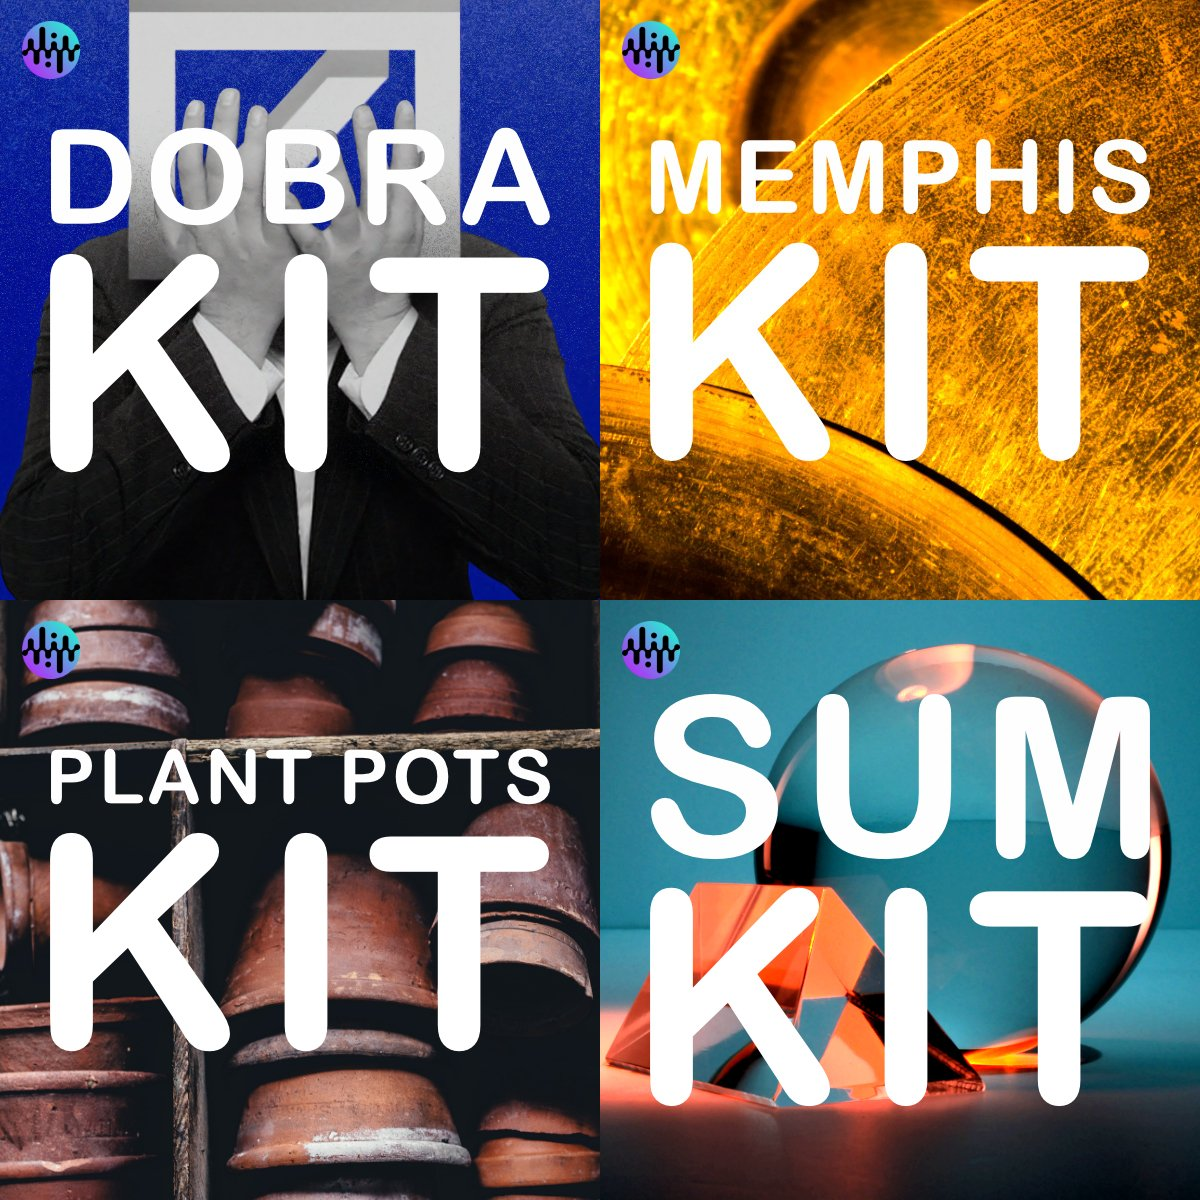 New drum kits to explore! We've added more kits to the collection, from smashed plant pots and vintage acoustic kits to swung hip hop and sub-heavy techno.   Now available with a Noiiz membership: https://t.co/gbhGHKccz9  #drums #drumkits #drumsamples #samples https://t.co/PrmrdU6Ytq